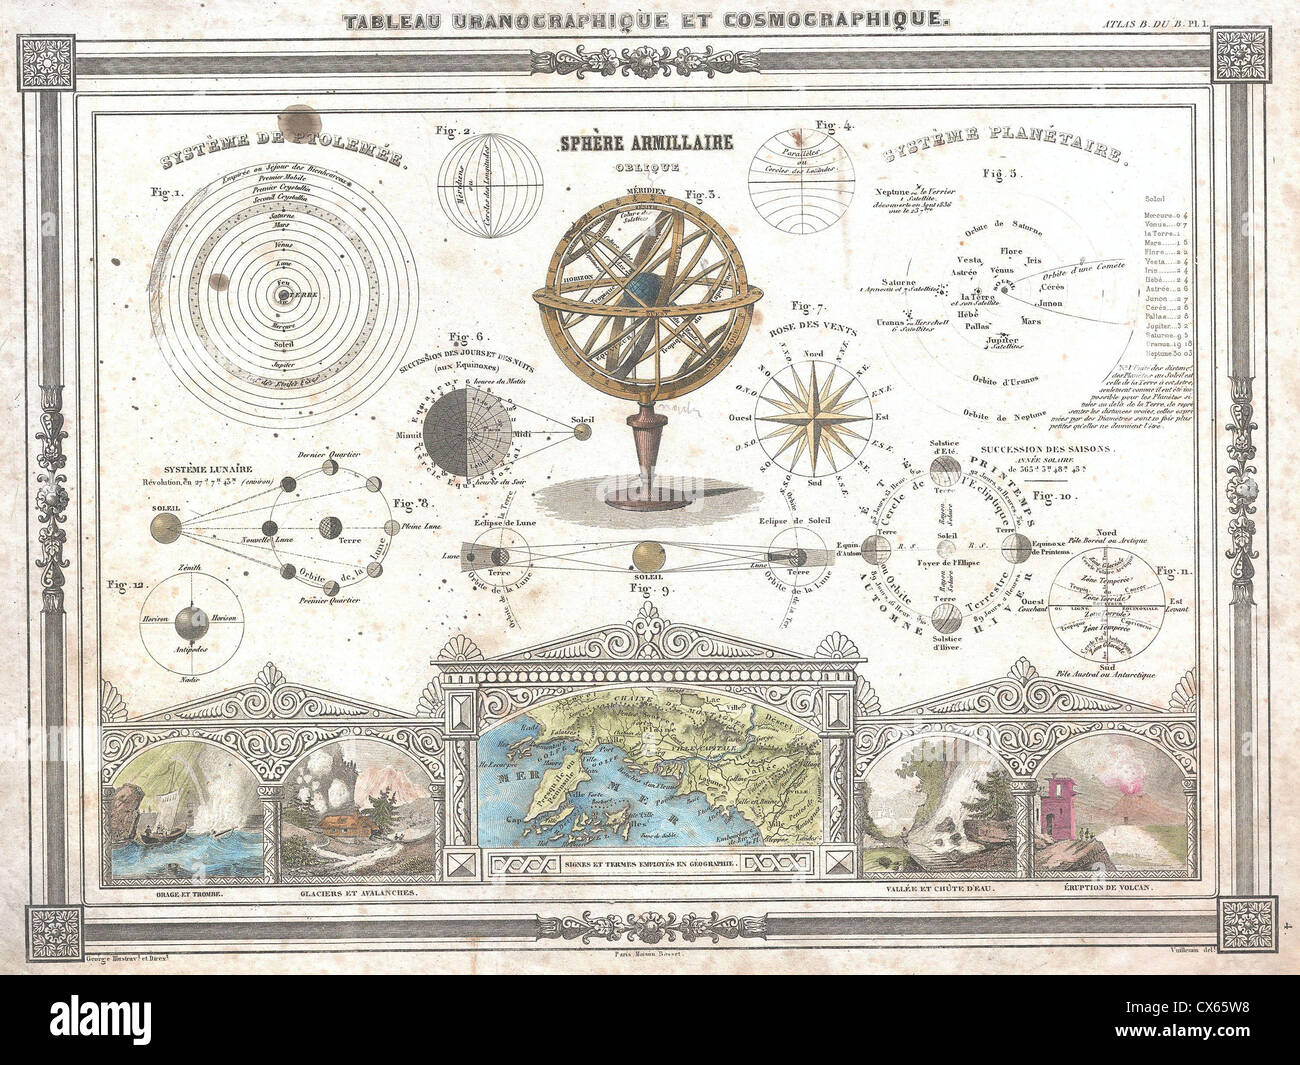 1852 Vuillemin Astronomical and Cosmographical Chart - Stock Image